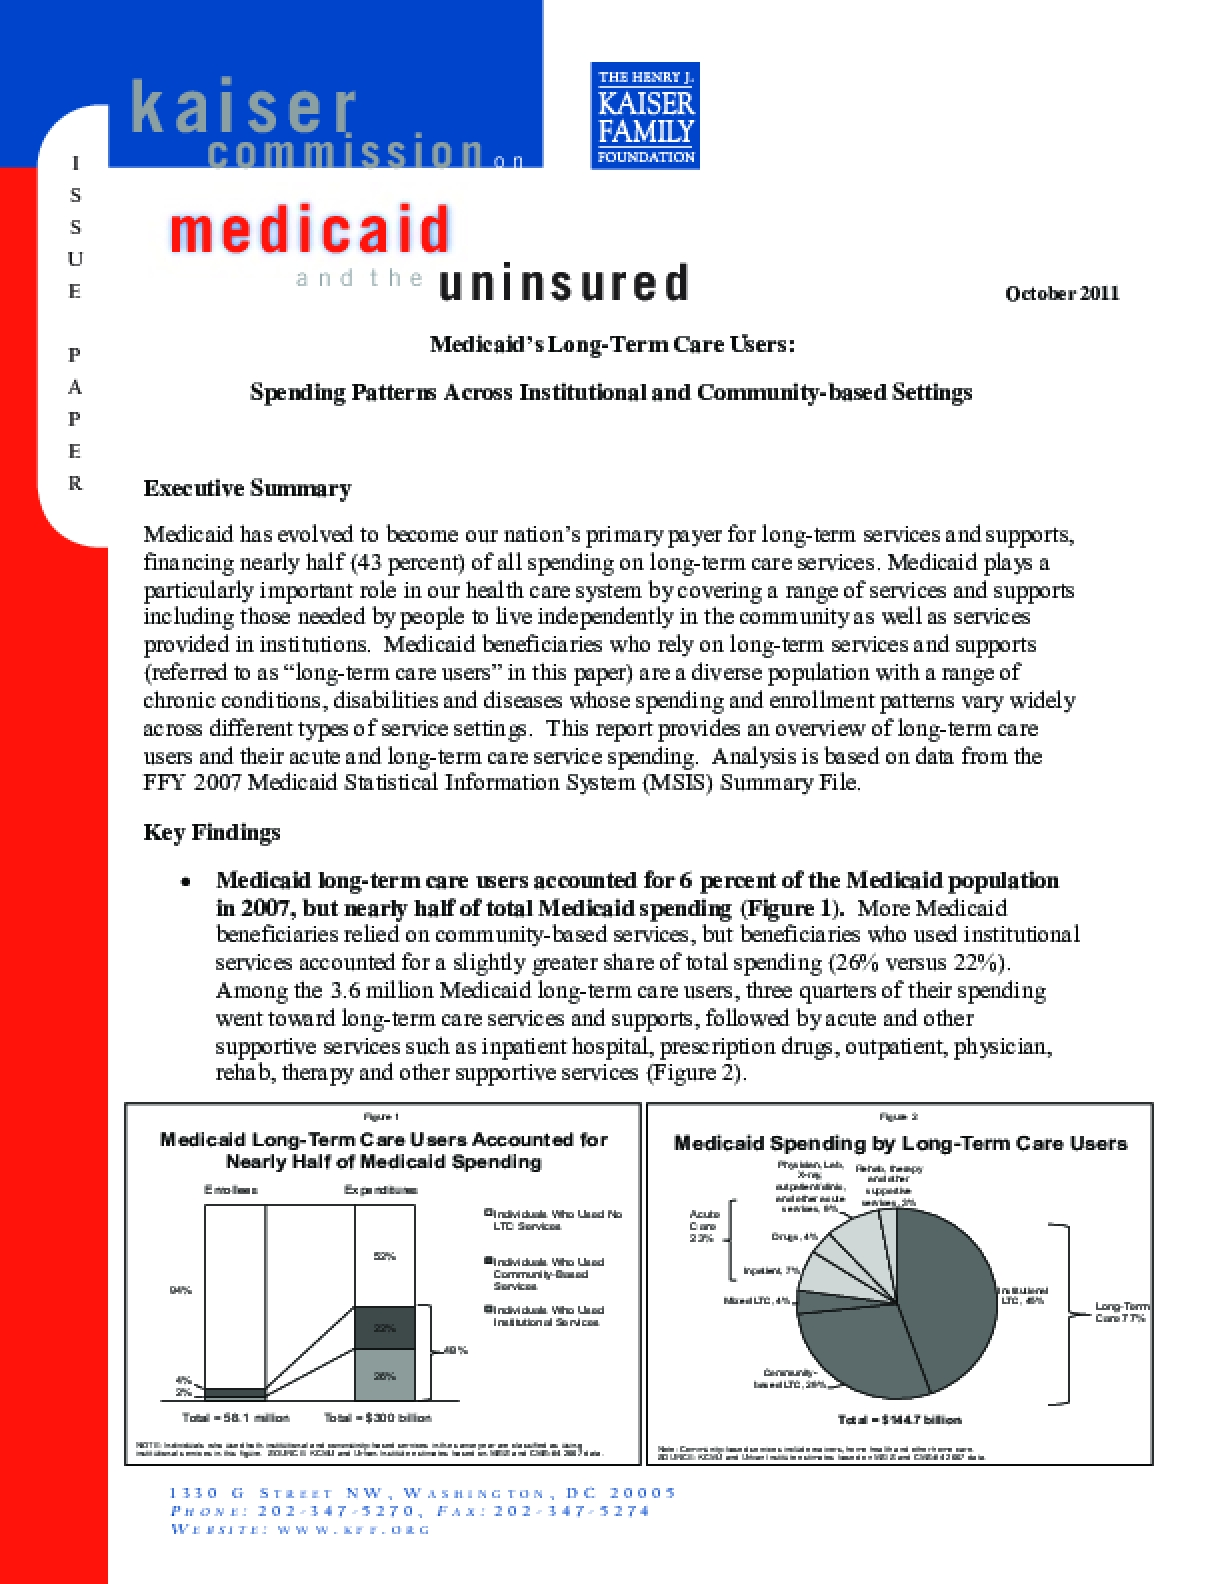 Medicaid's Long-Term Care Users: Spending Patterns Across Institutional and Community-Based Settings